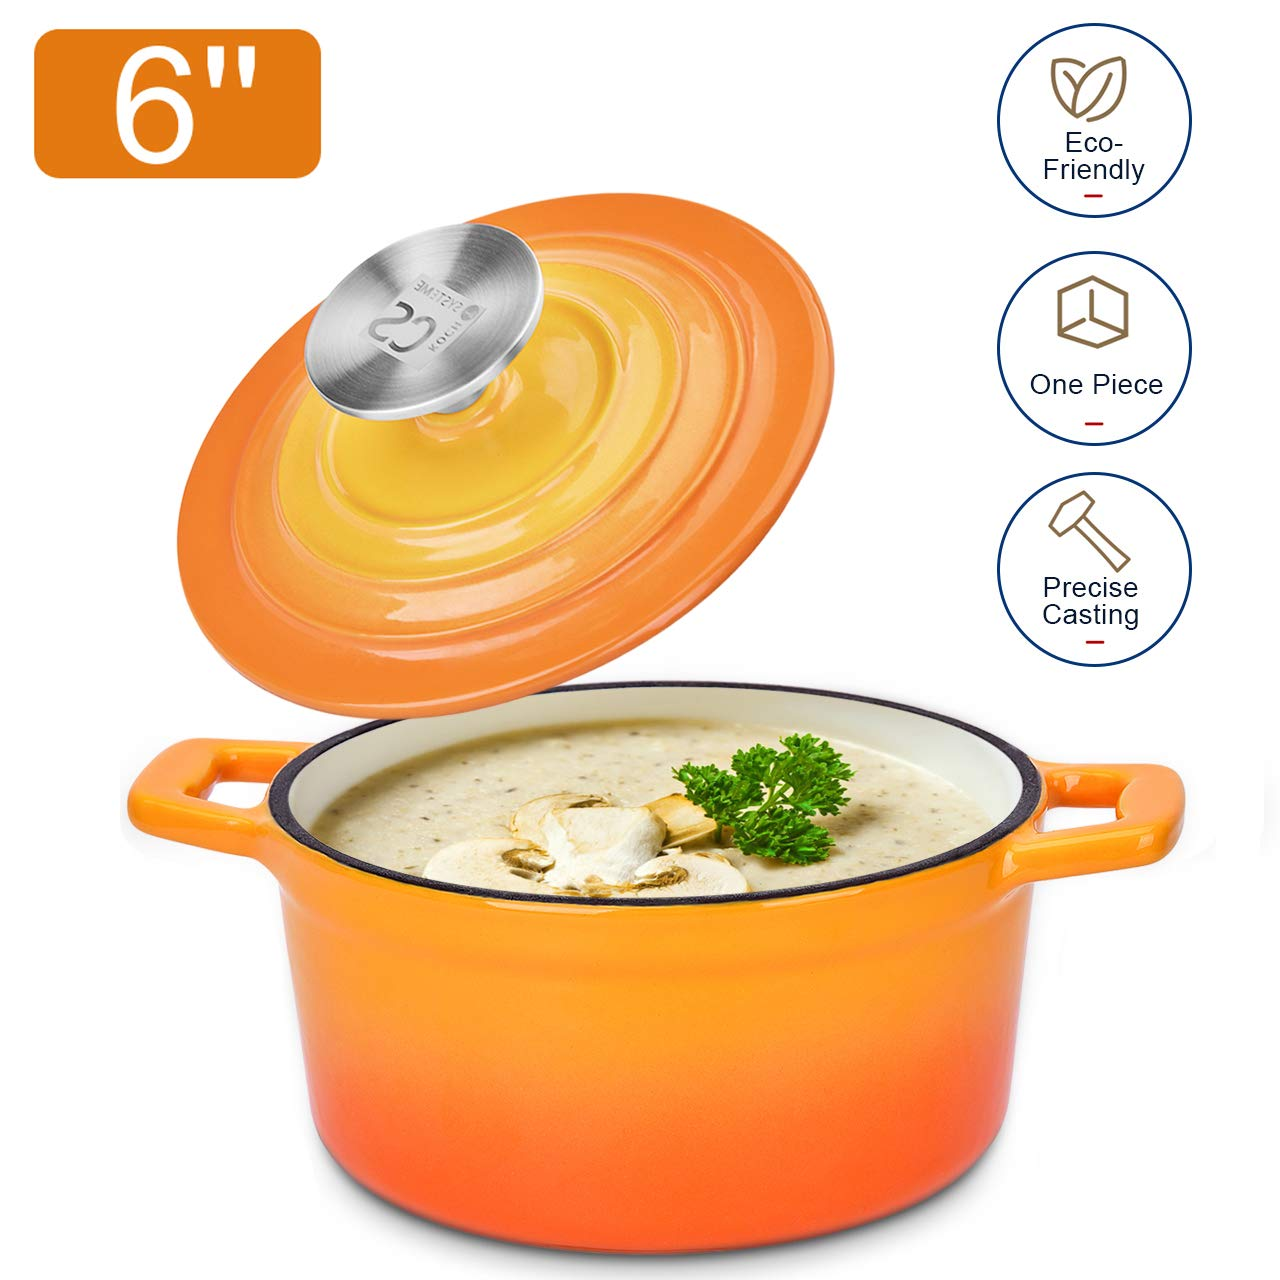 Dutch Oven Cast Iron Enamel Coating Cookware Casserole with Lid - 0.5-Quart (5.91 inches) , Sunset Orange Cocotte, Versatile Saucepan with Lid, Stew Pot by KOCH SYSTEME CS